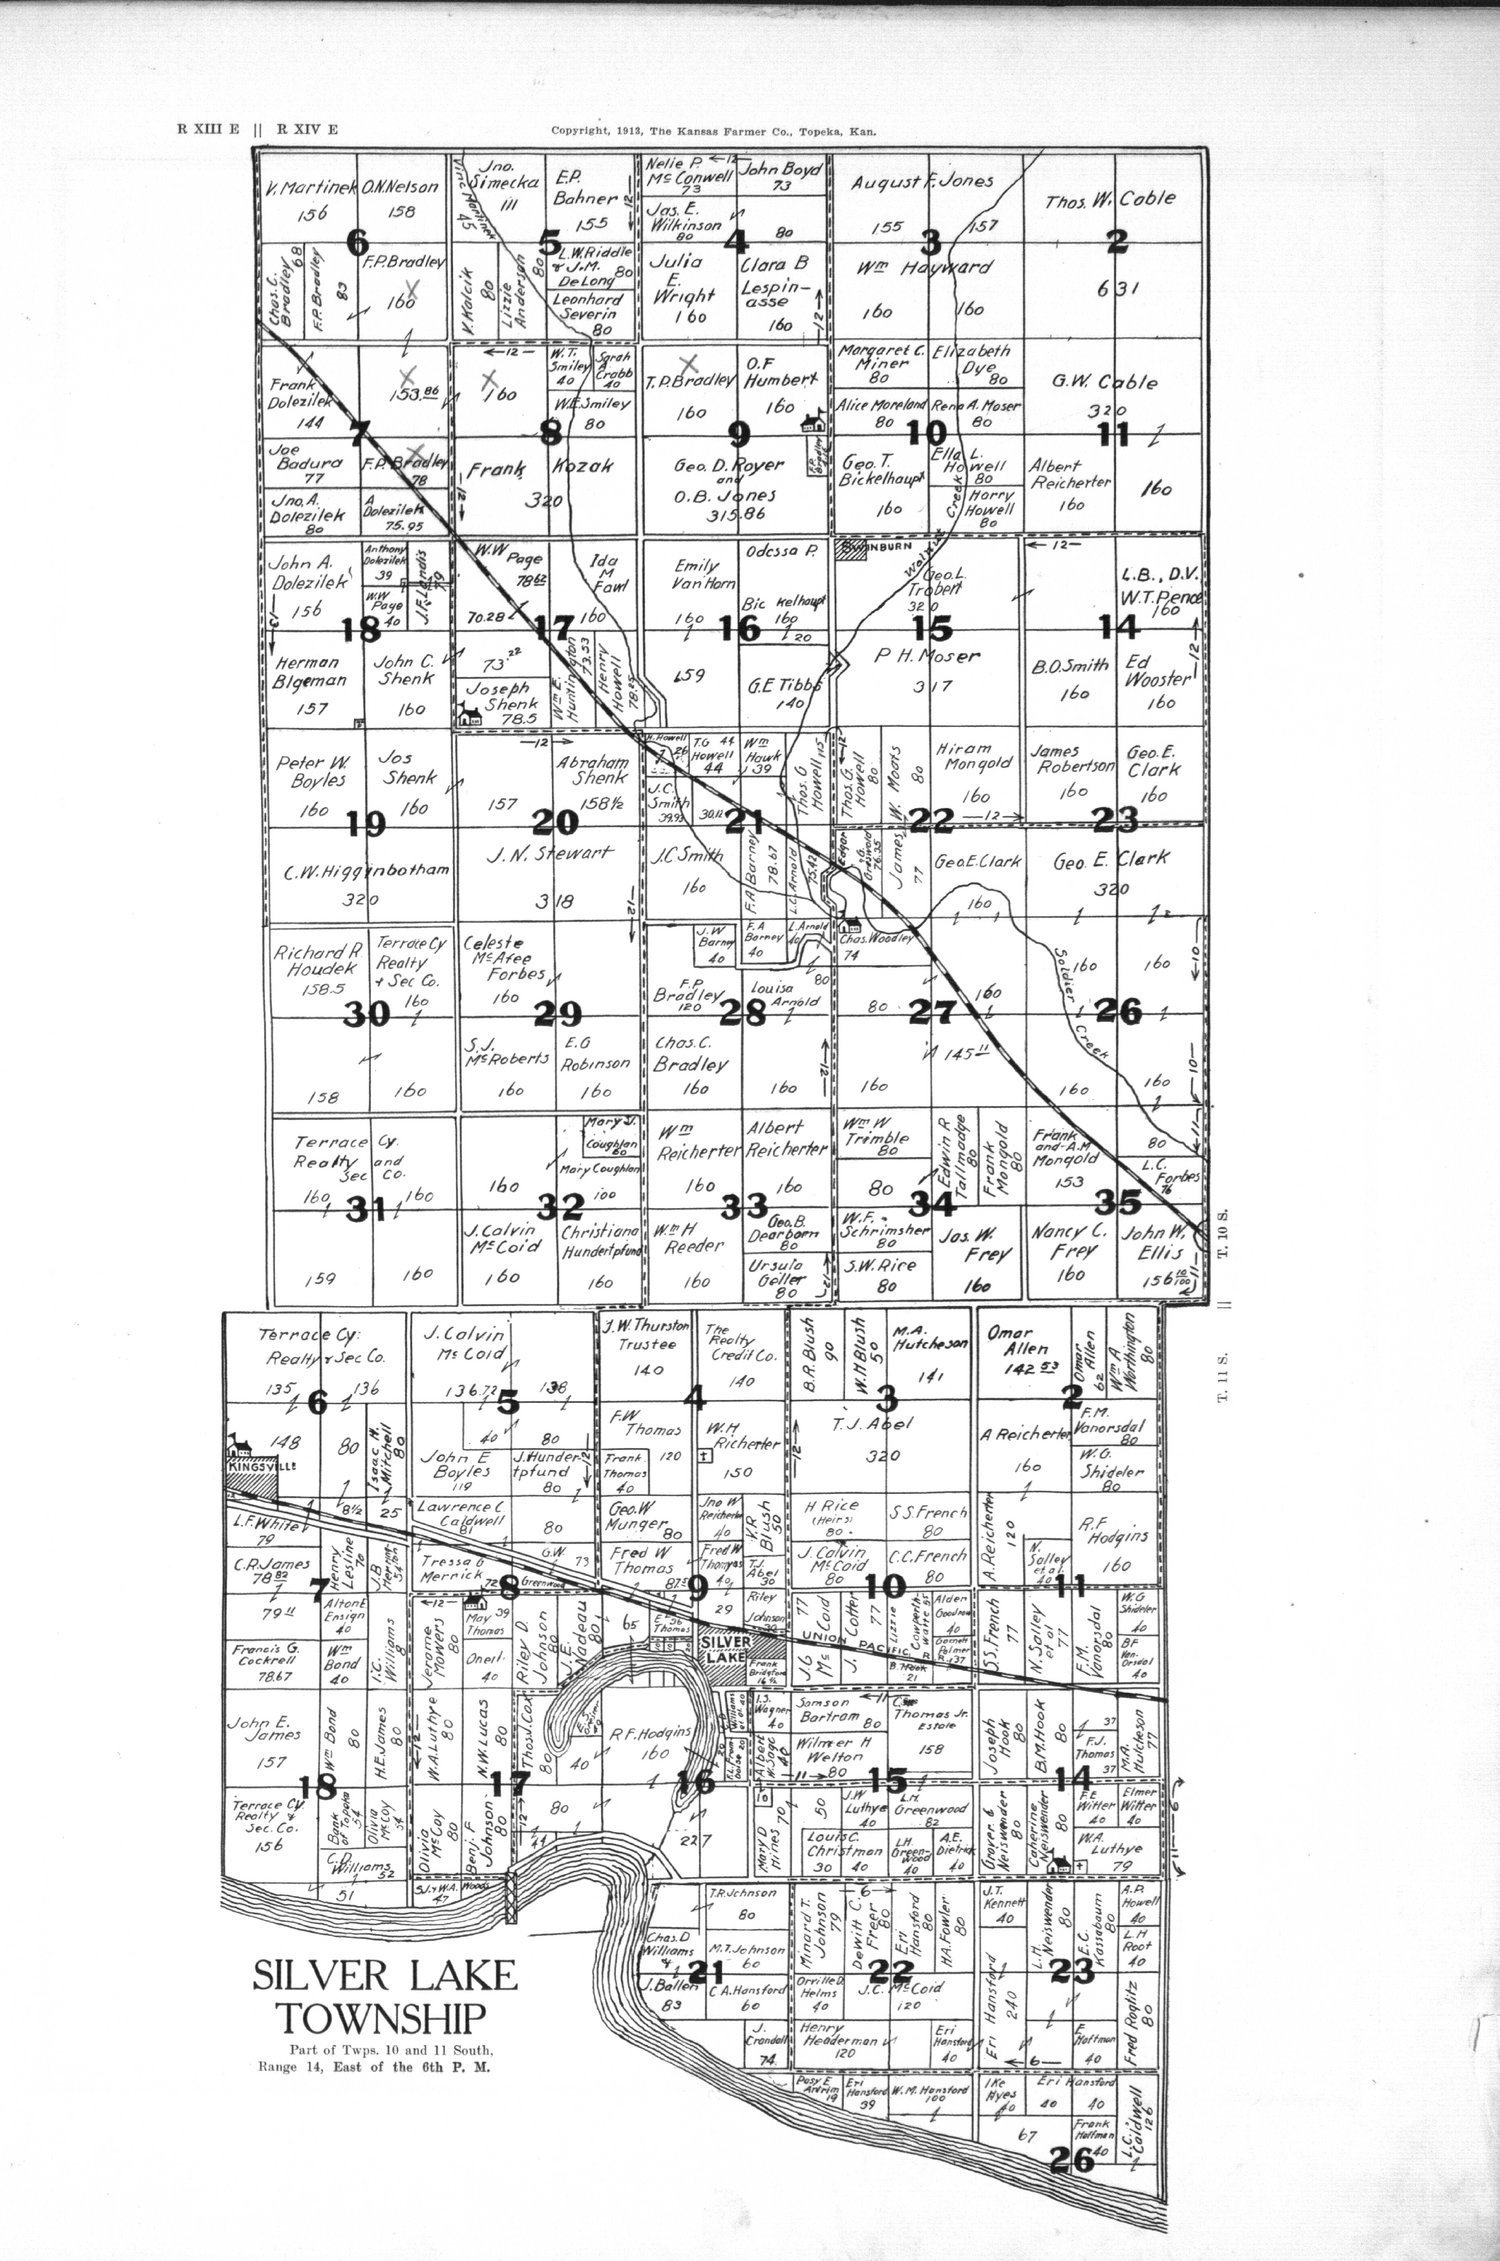 Plat book, directory and survey of Shawnee County, Kansas - 9